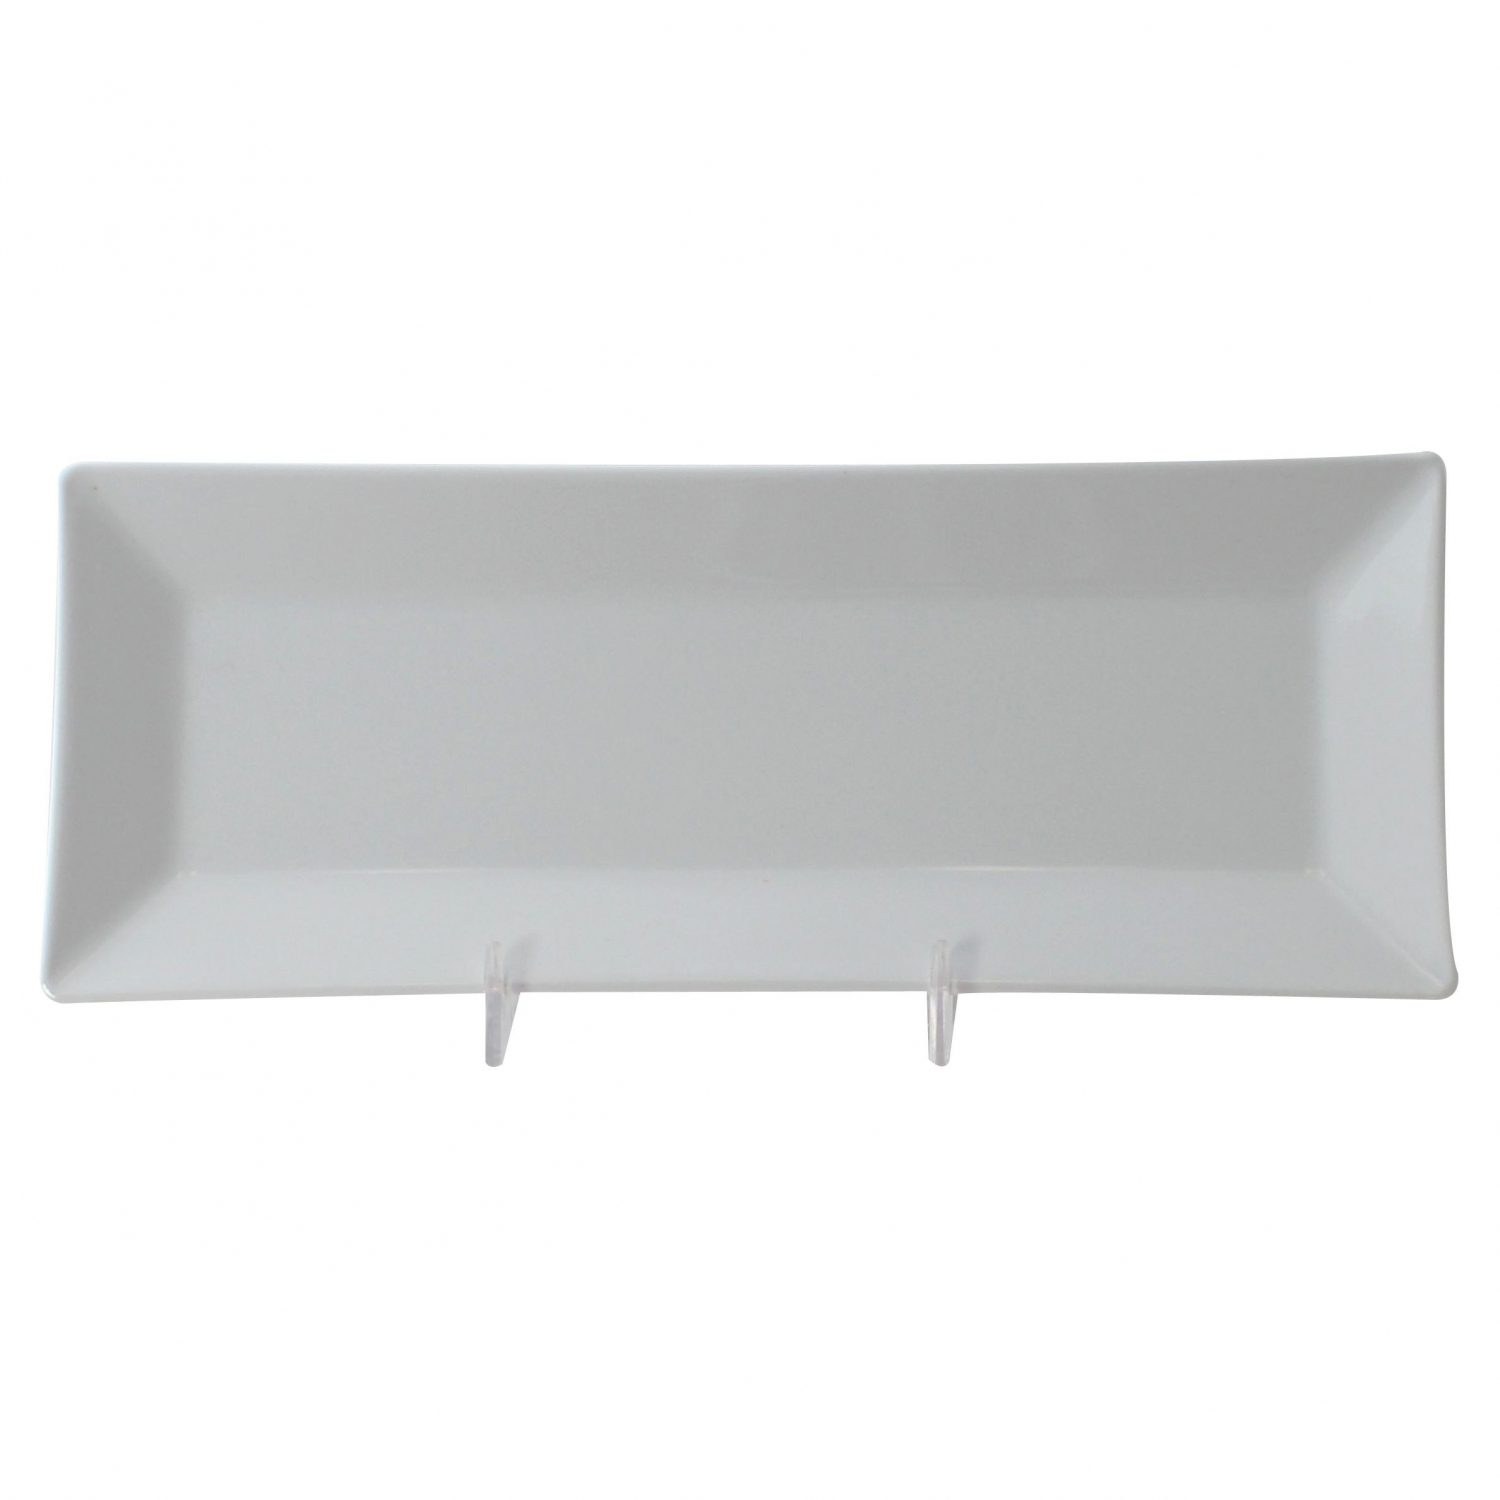 "Thunder Group 29110WT Rectangular Classic White Series Plate 10-1/4"" x 4"" - 1 doz"